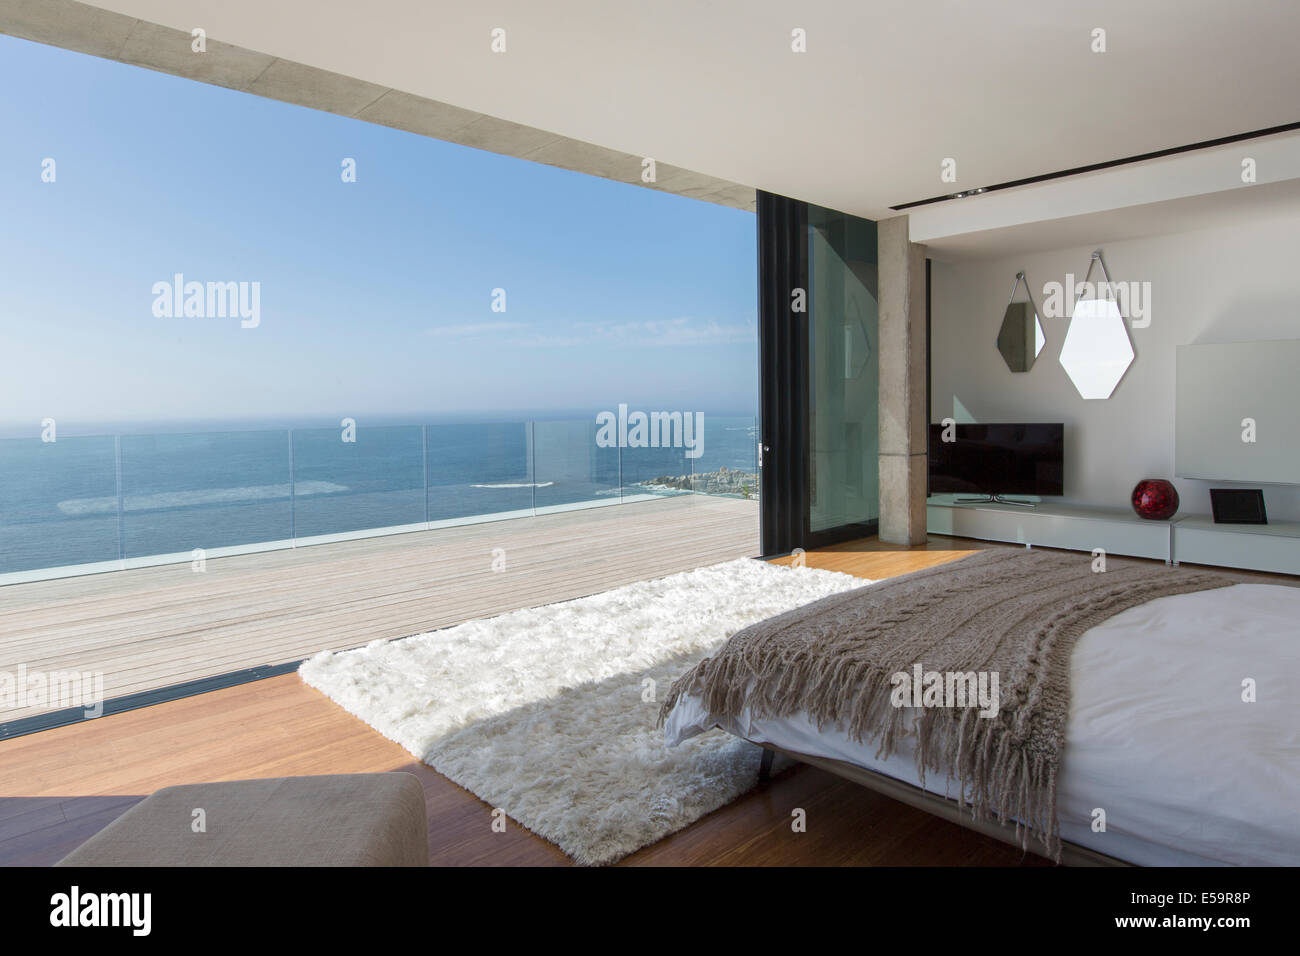 moderne schlafzimmer mit blick auf meer stockfoto bild. Black Bedroom Furniture Sets. Home Design Ideas